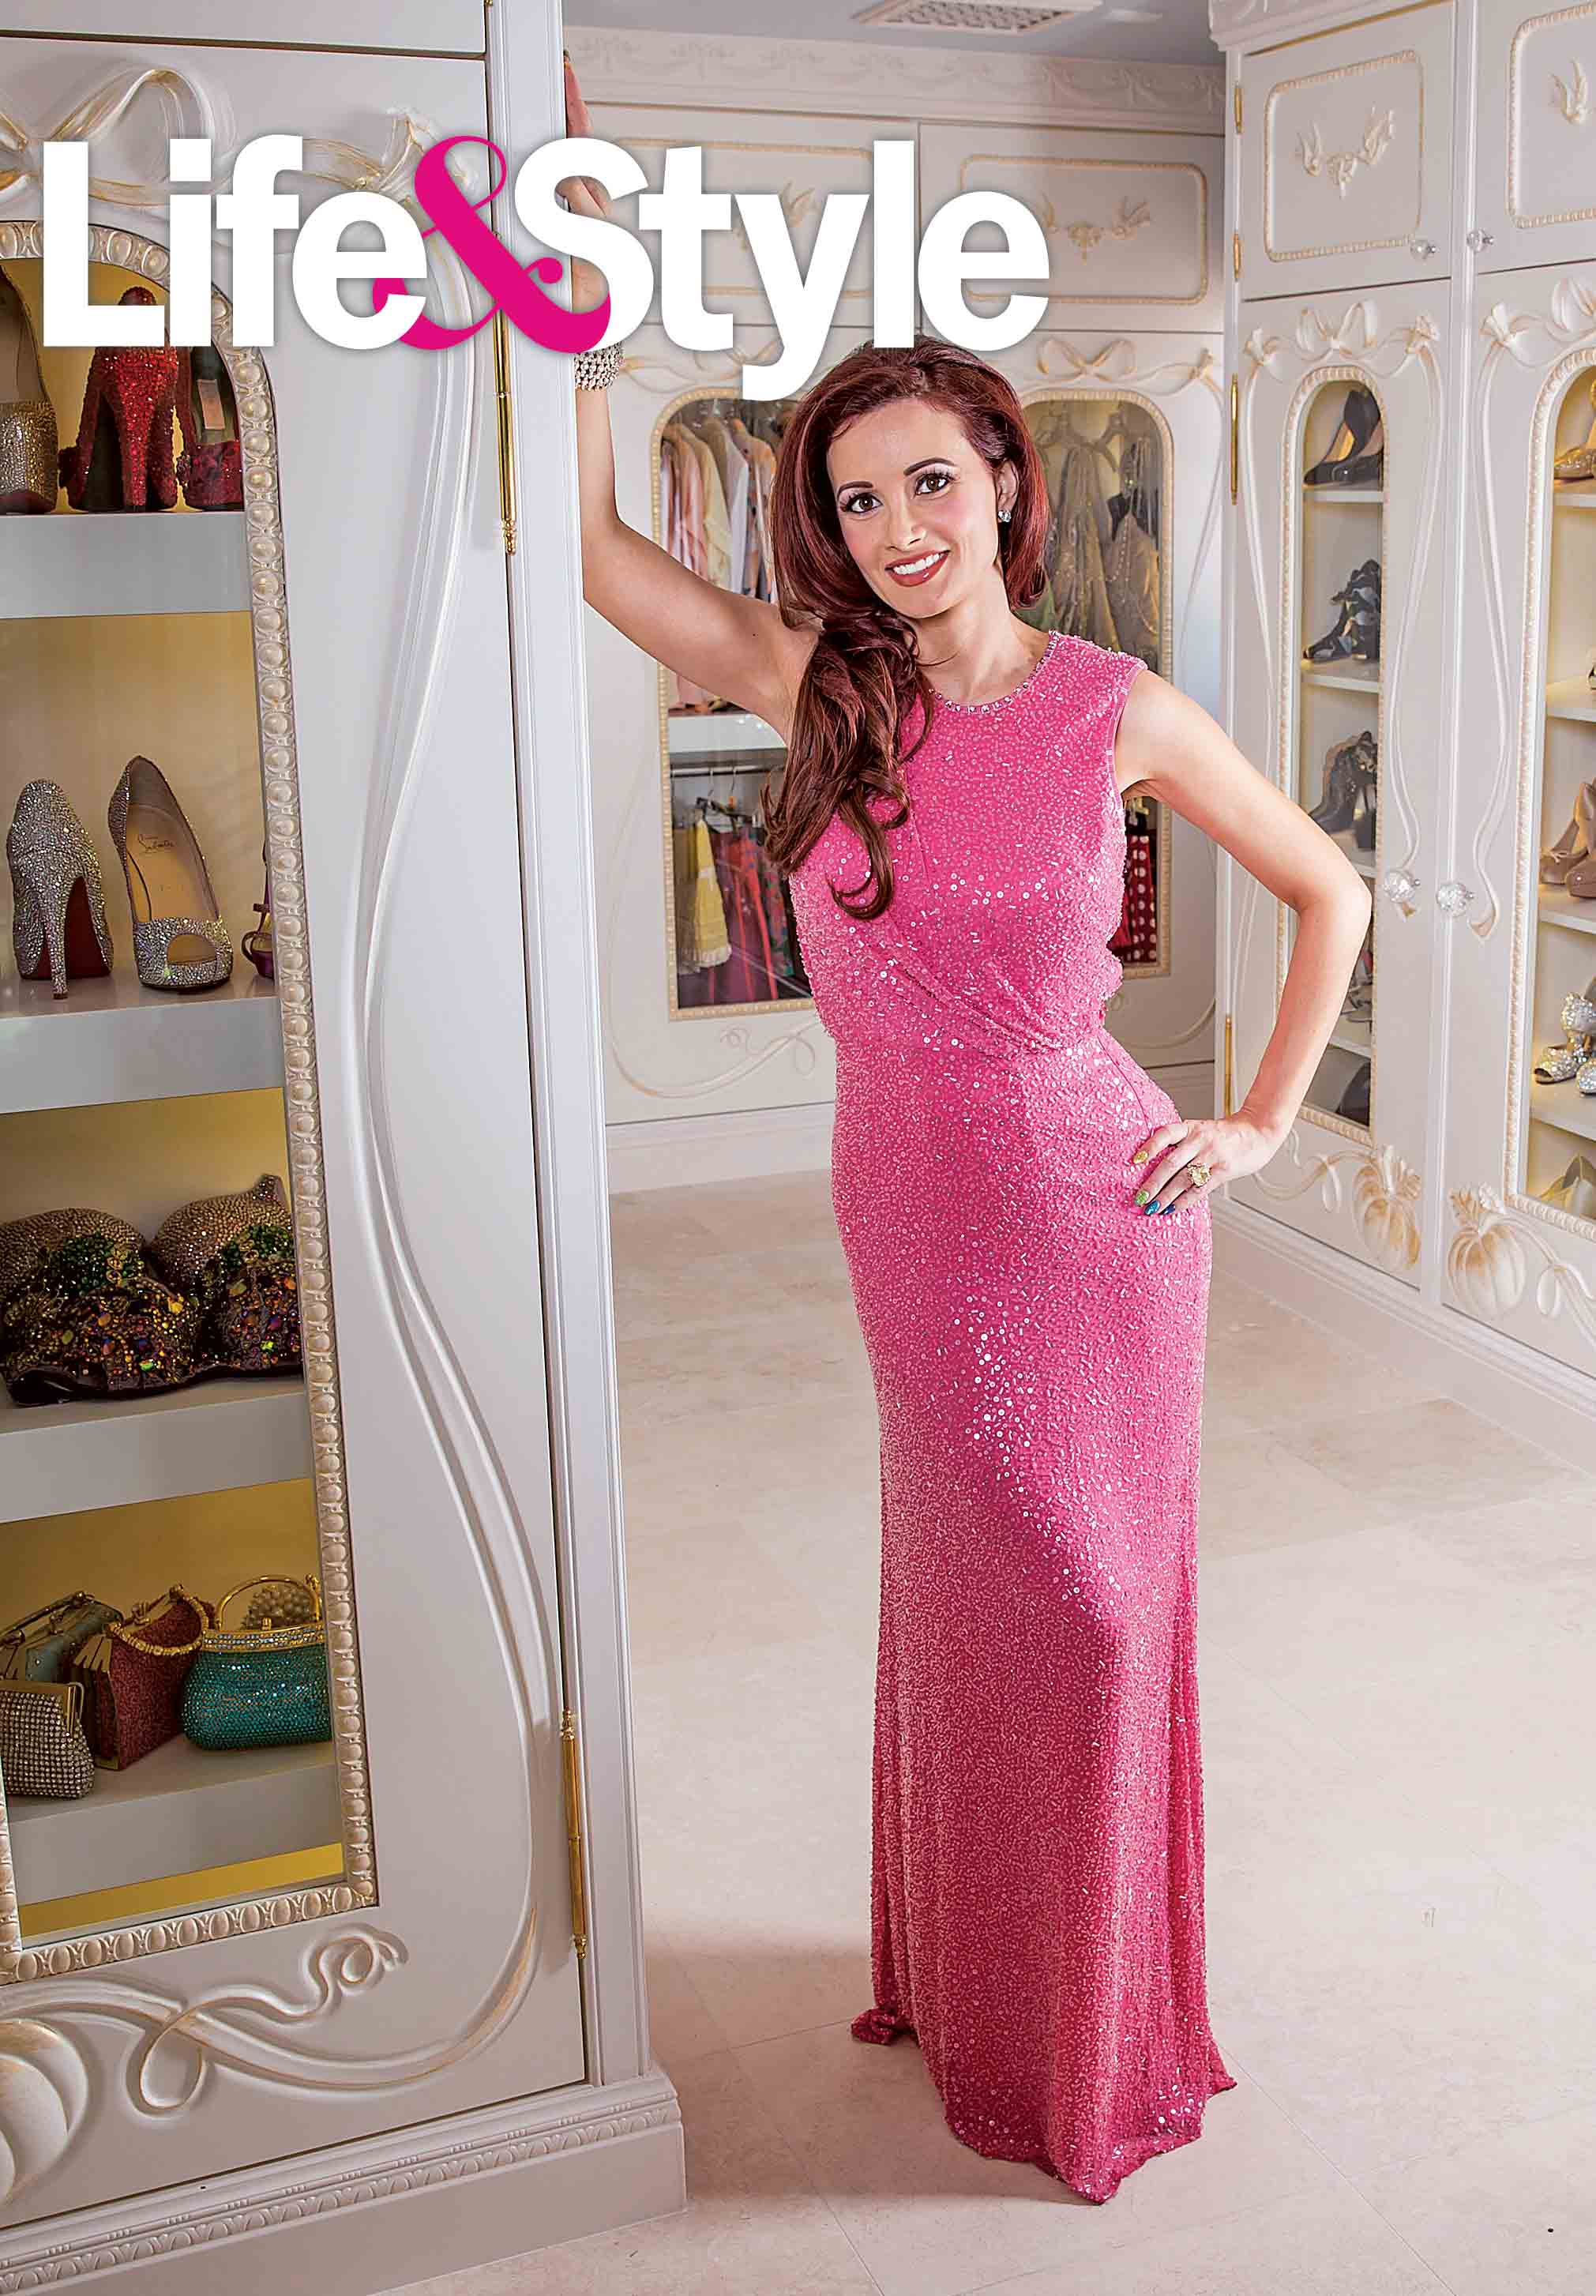 3dec583b1842e EXCLUSIVE INTERVIEW & PHOTO SHOOTInside Holly Madison's 500-Square-Foot  Cinderella-Inspired Closet